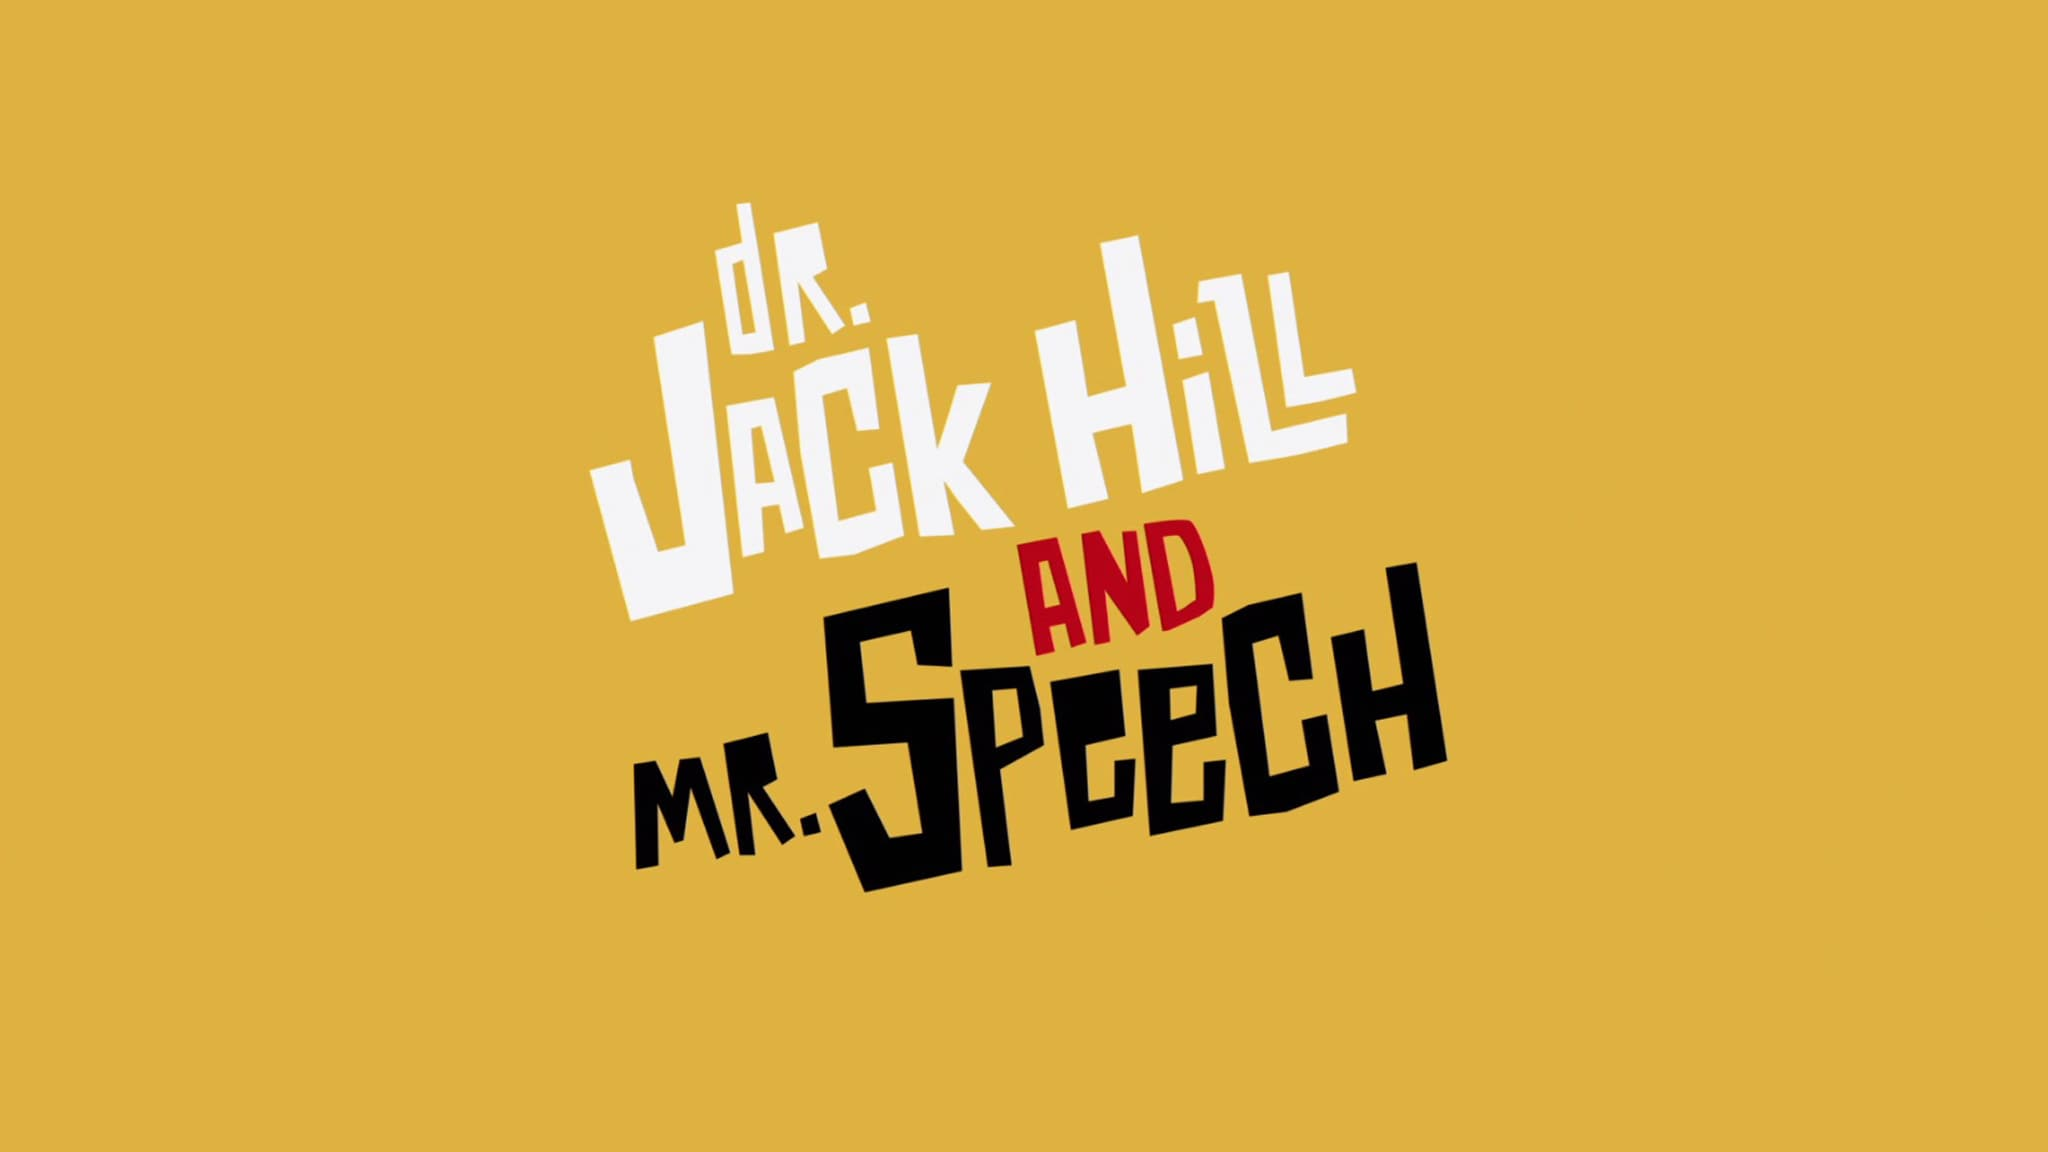 Rai Scuola Inglese Dr. Jack Hill and Mr. Speech St. 2 Ep.6 Gone Without the Wind